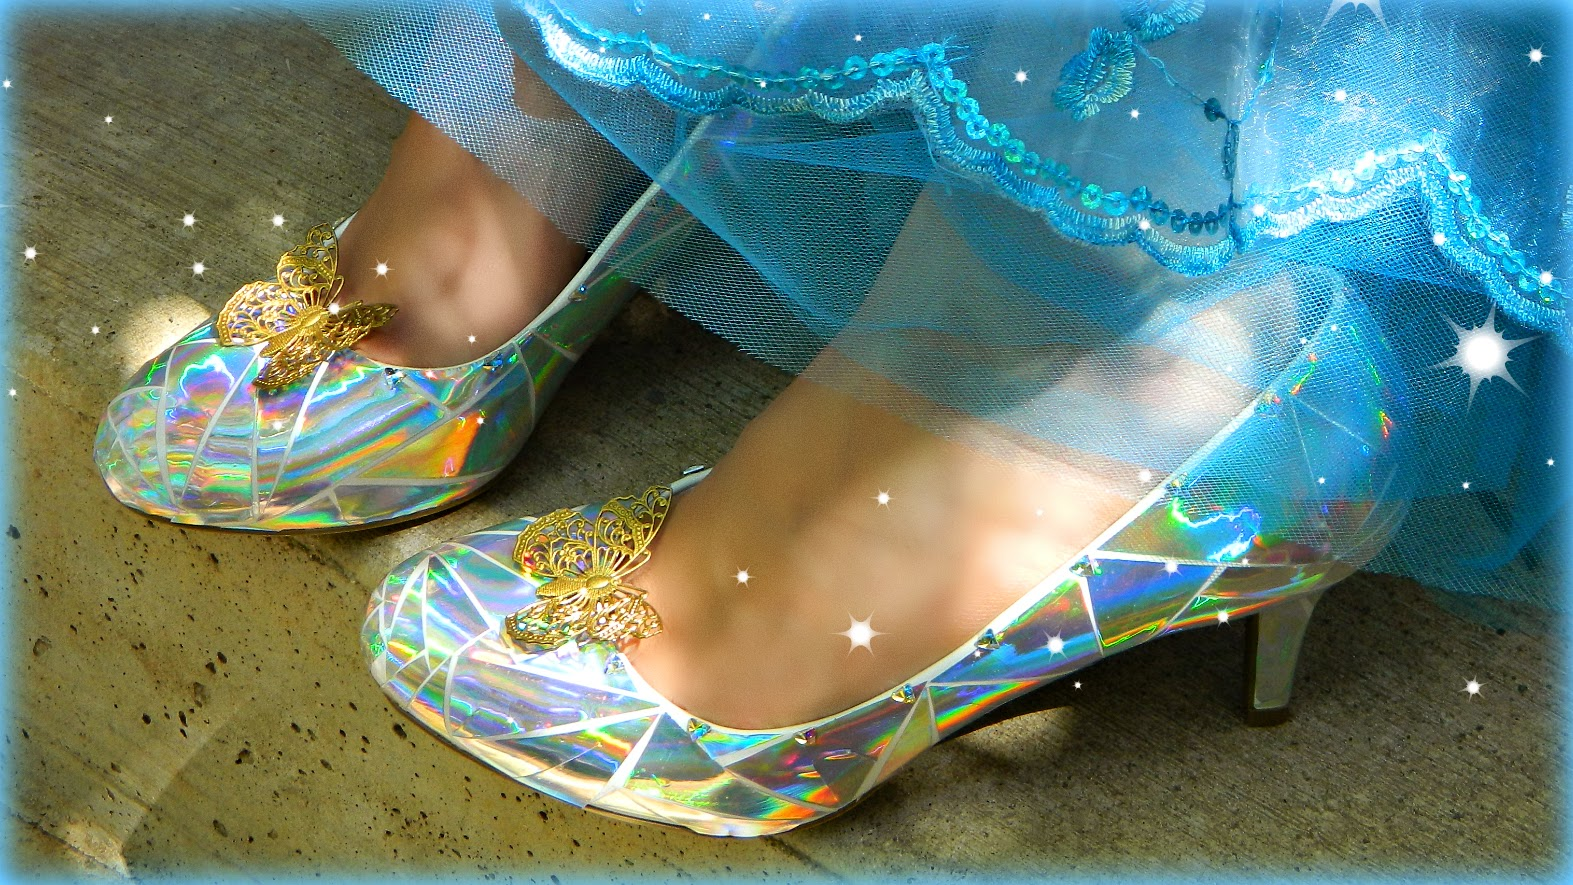 045a8498f A wearable glass slipper! The original from the latest Cinderella movie